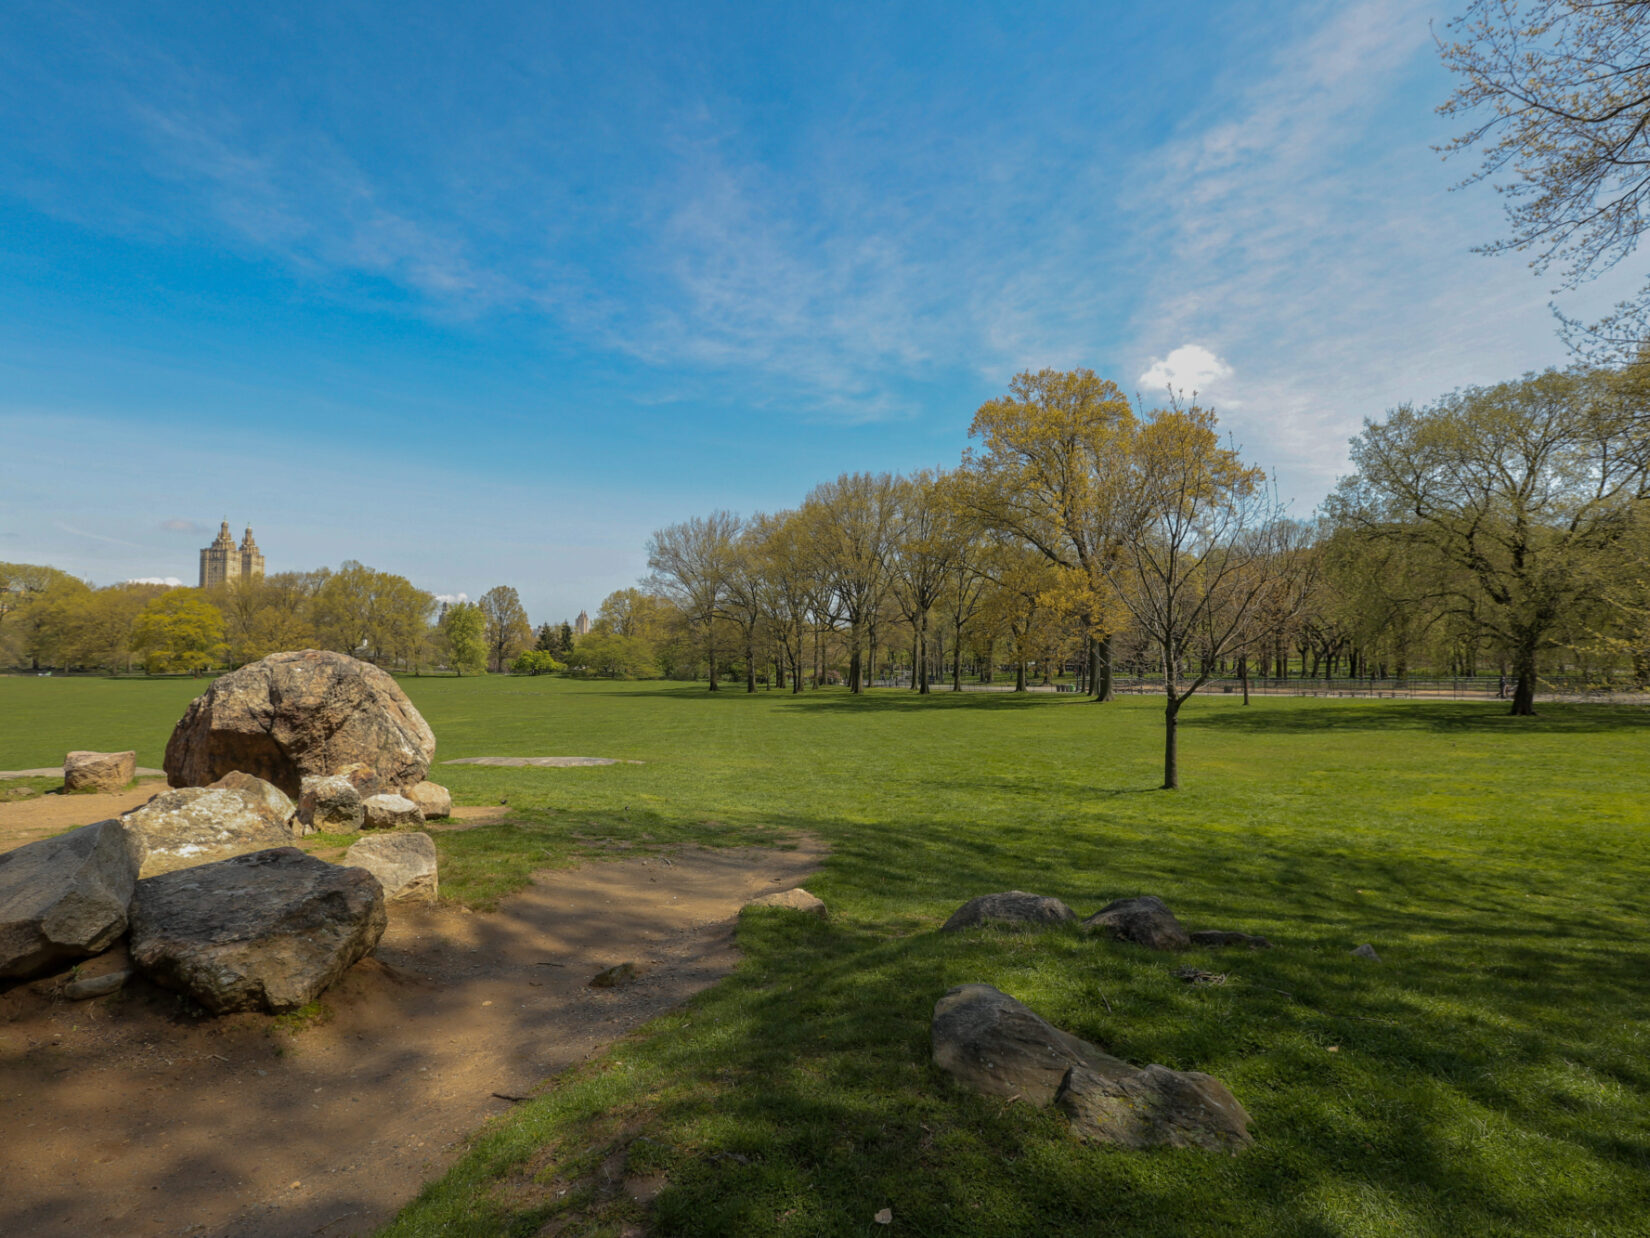 A view of an empty Sheep Meadow, shot in spring.